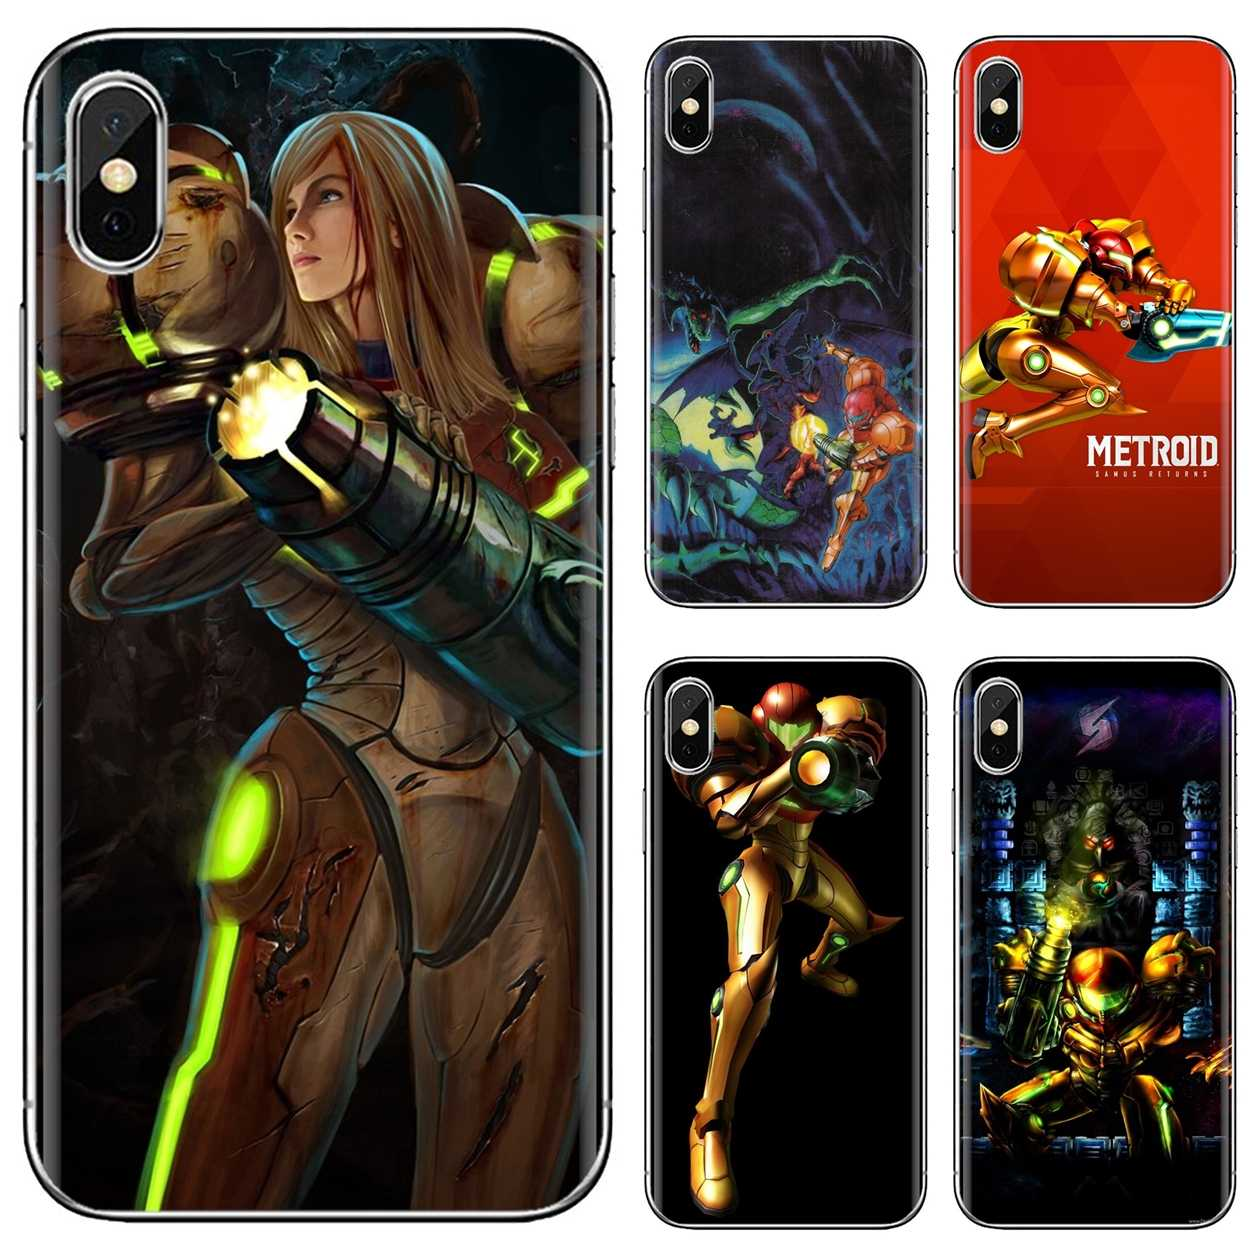 Metroid Wallpaper Hd For Iphone 11 Pro 4 4s 5 5s Se 5c 6 6s 7 8 X 10 Xr Xs Plus Max For Ipod Touch Beautiful Silicone Phone Case Half Wrapped Cases Aliexpress